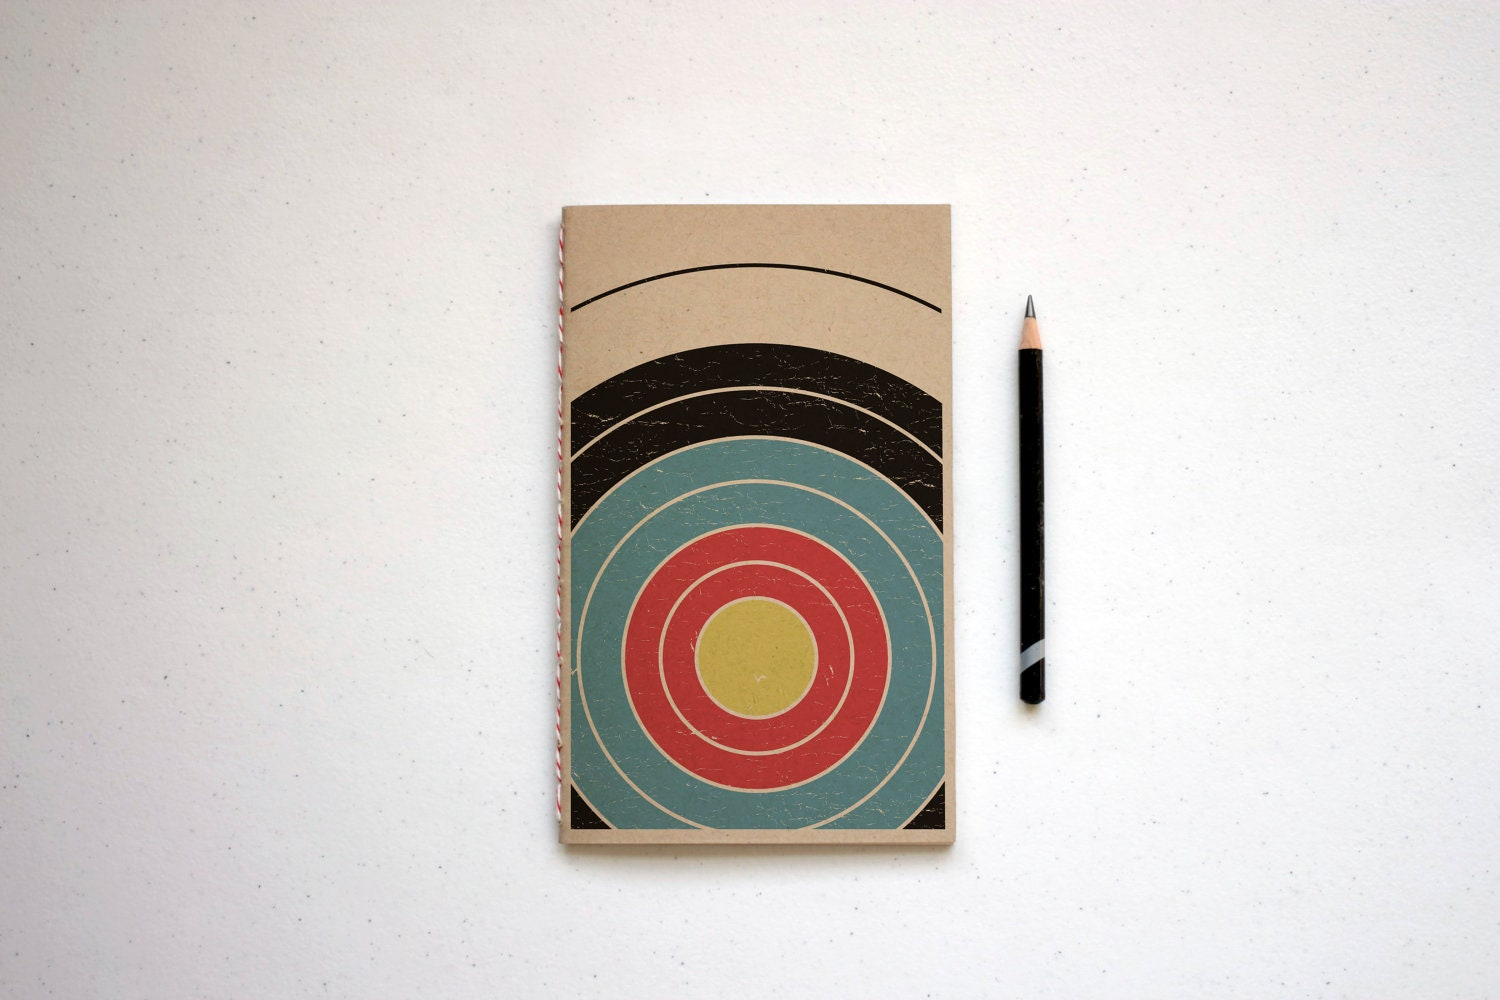 Handcrafted Journal, Notebook, Sketch Book, Recycled, Geometric Patterns - choicecuts